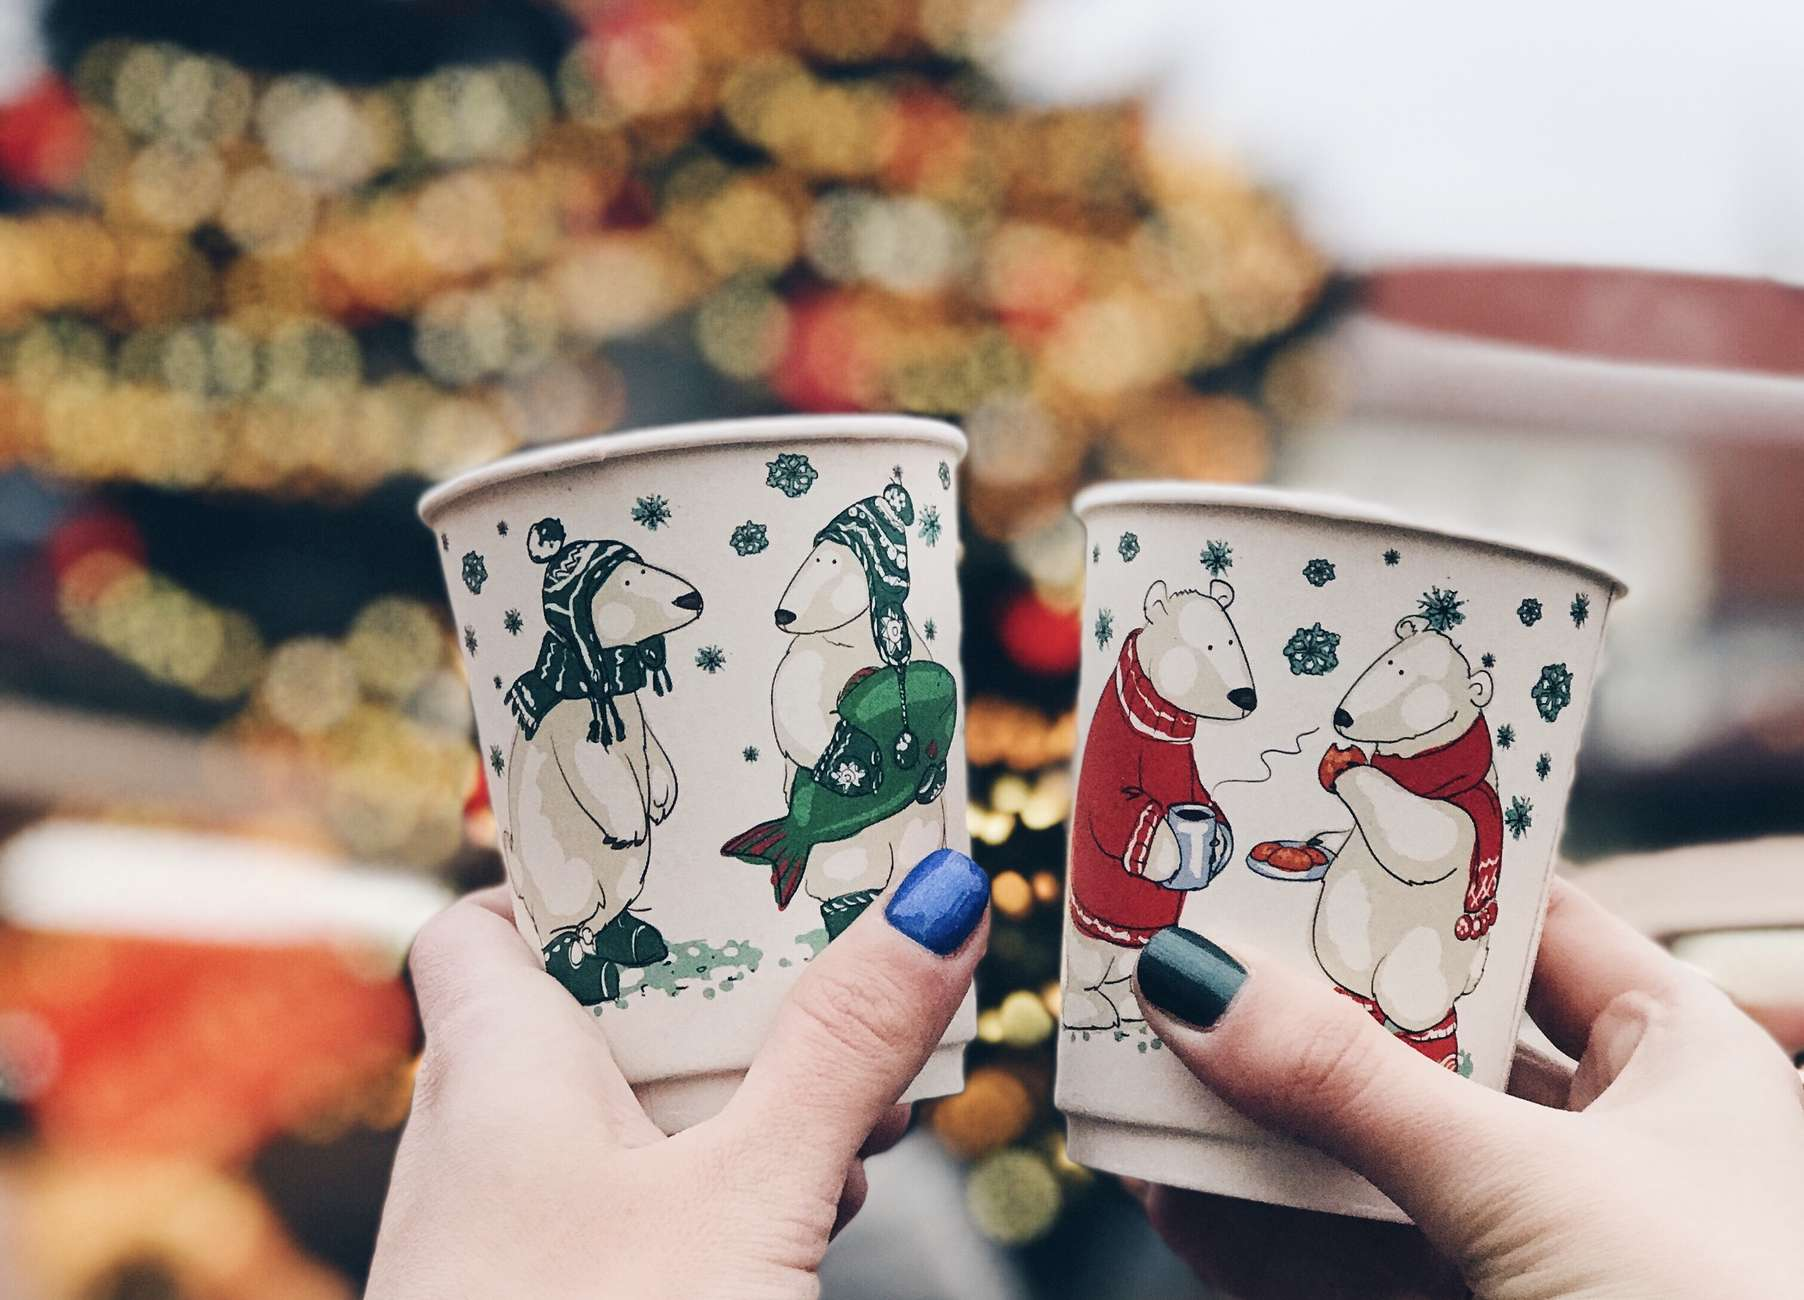 Mulled wine cups at Tallinn Christmas Market. Photo by: Kadi-Liis Koppel